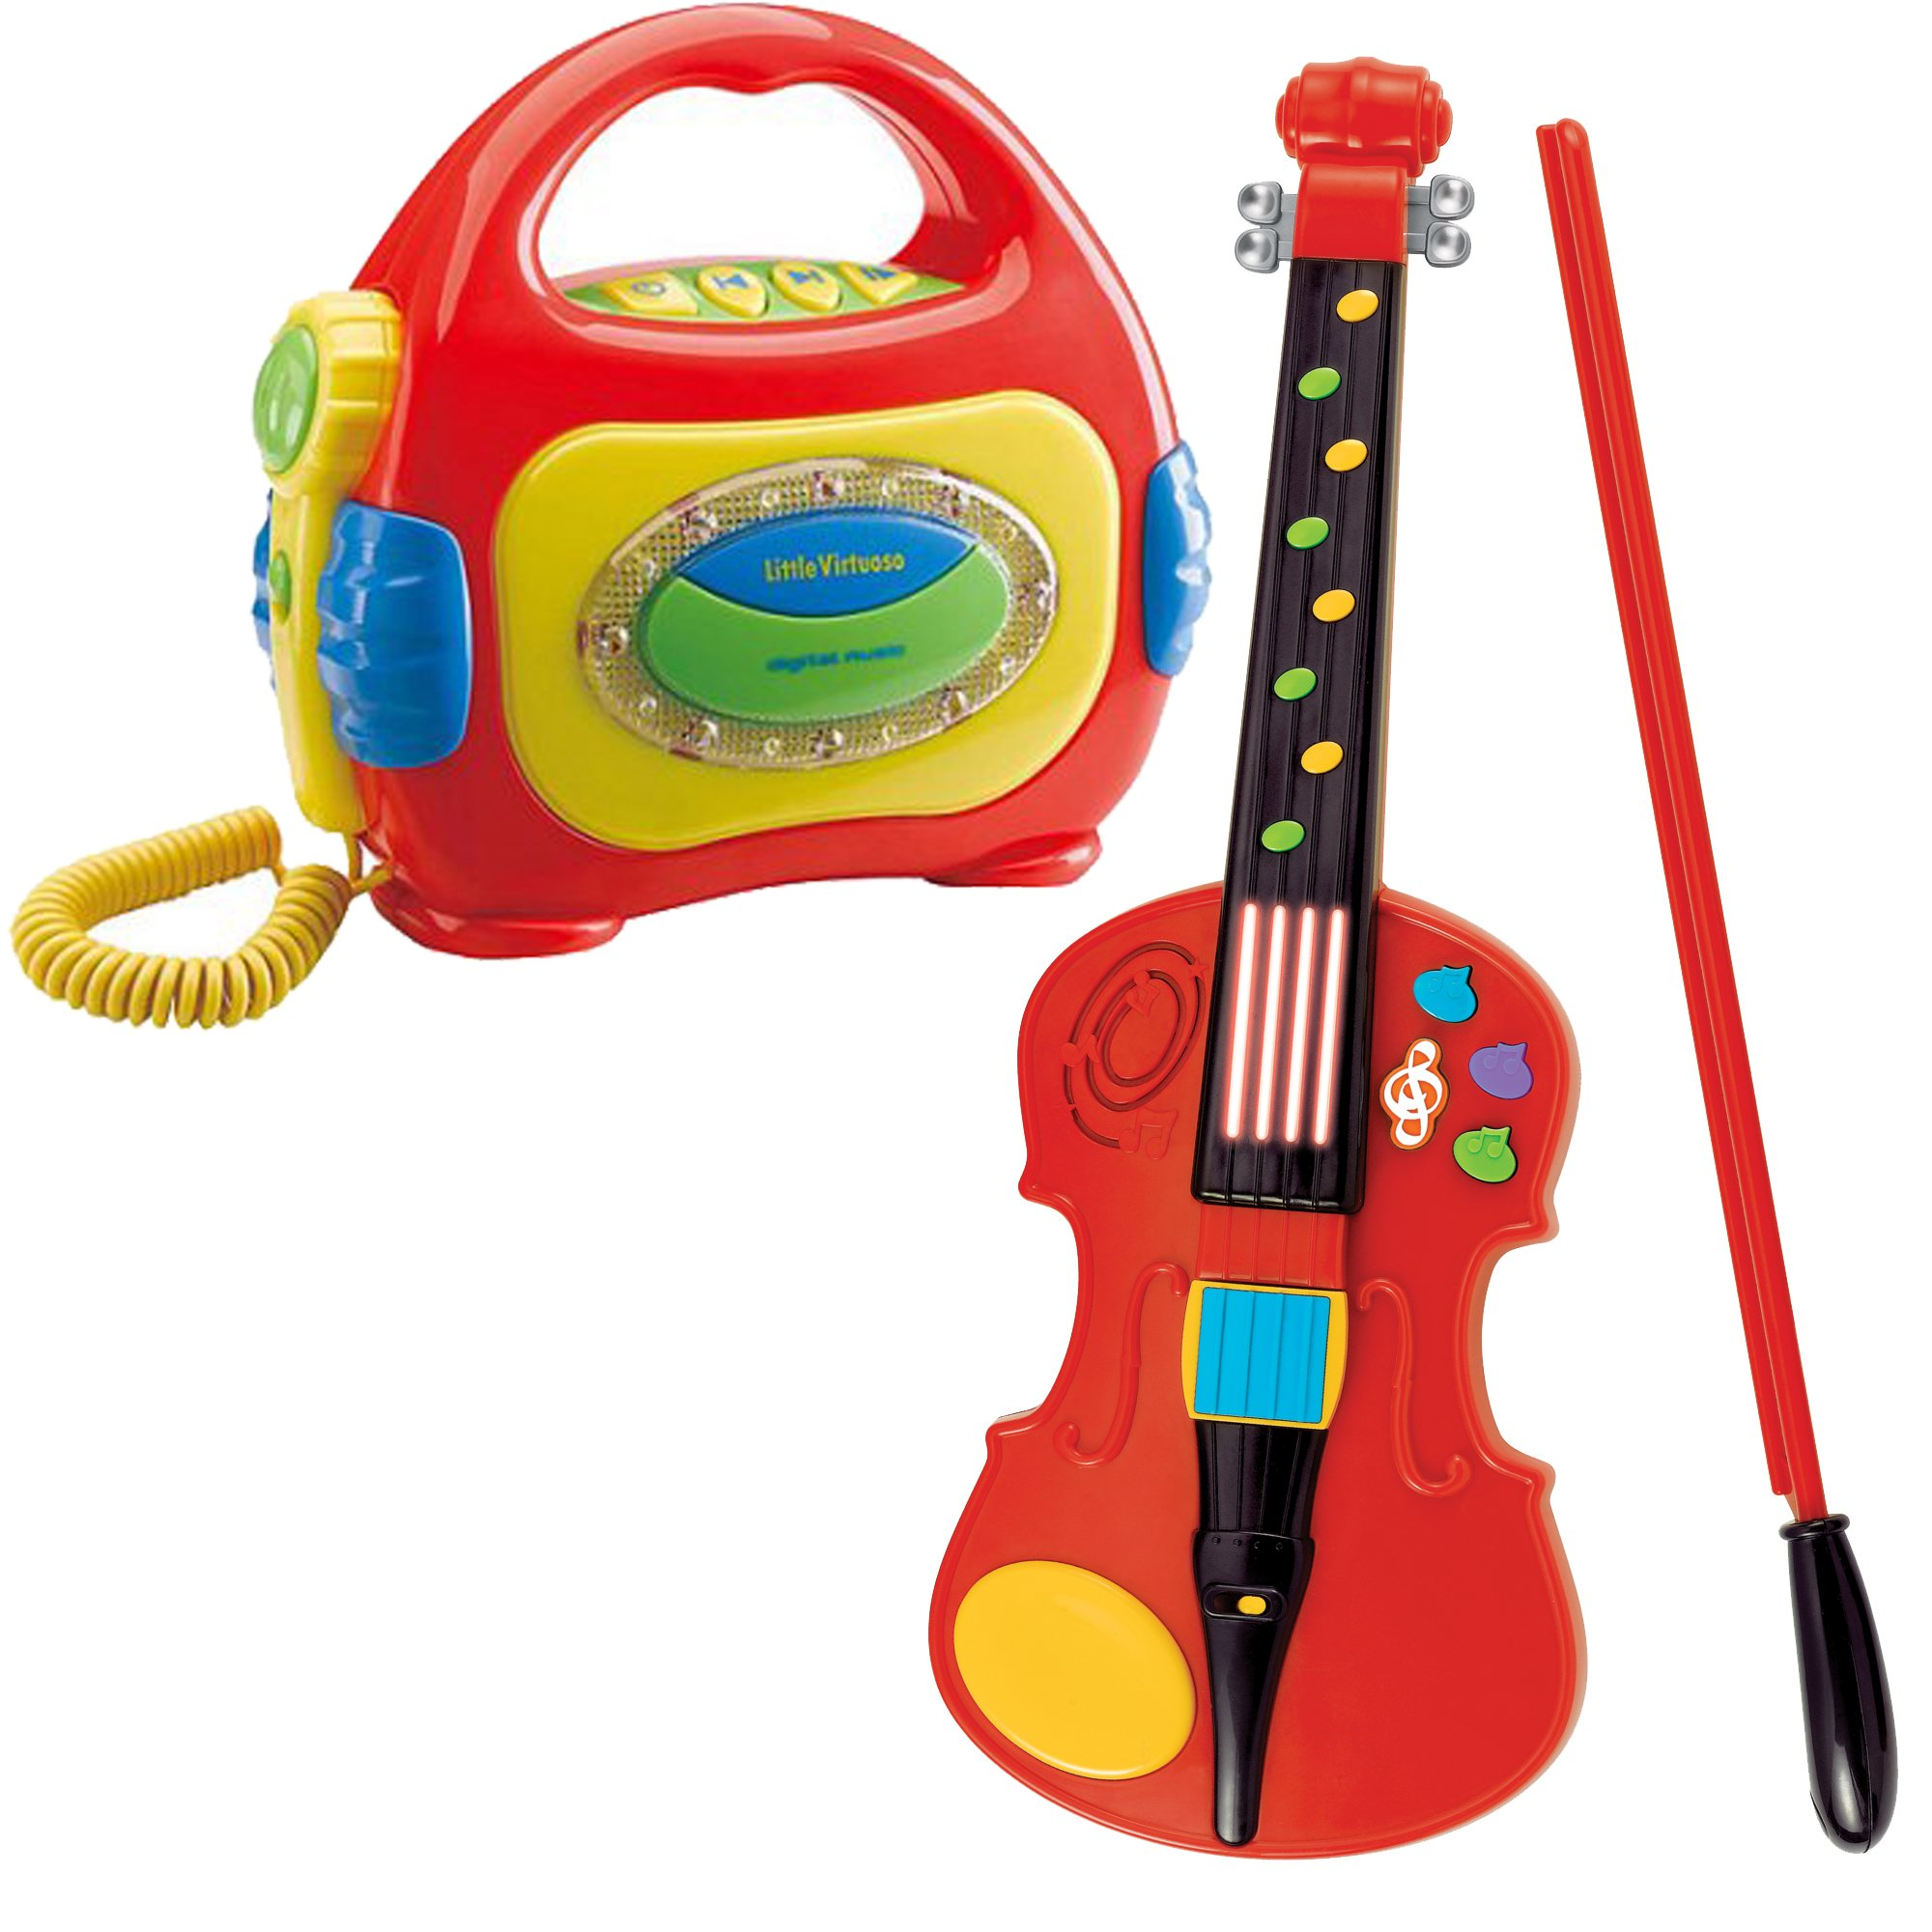 Little Virtuoso Fun Fiddle Little Violin Musical Kids Instruments Activity Toy with Sing Along MP3 Player